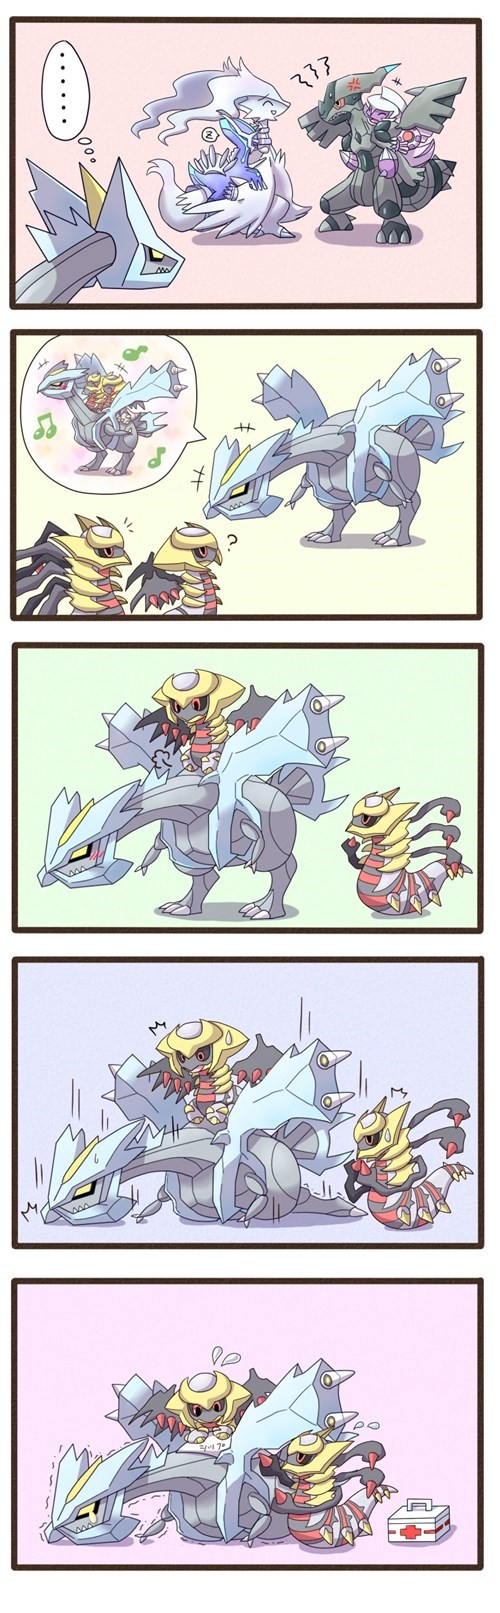 Pokémon comics legendaries kyurem - 7538061568